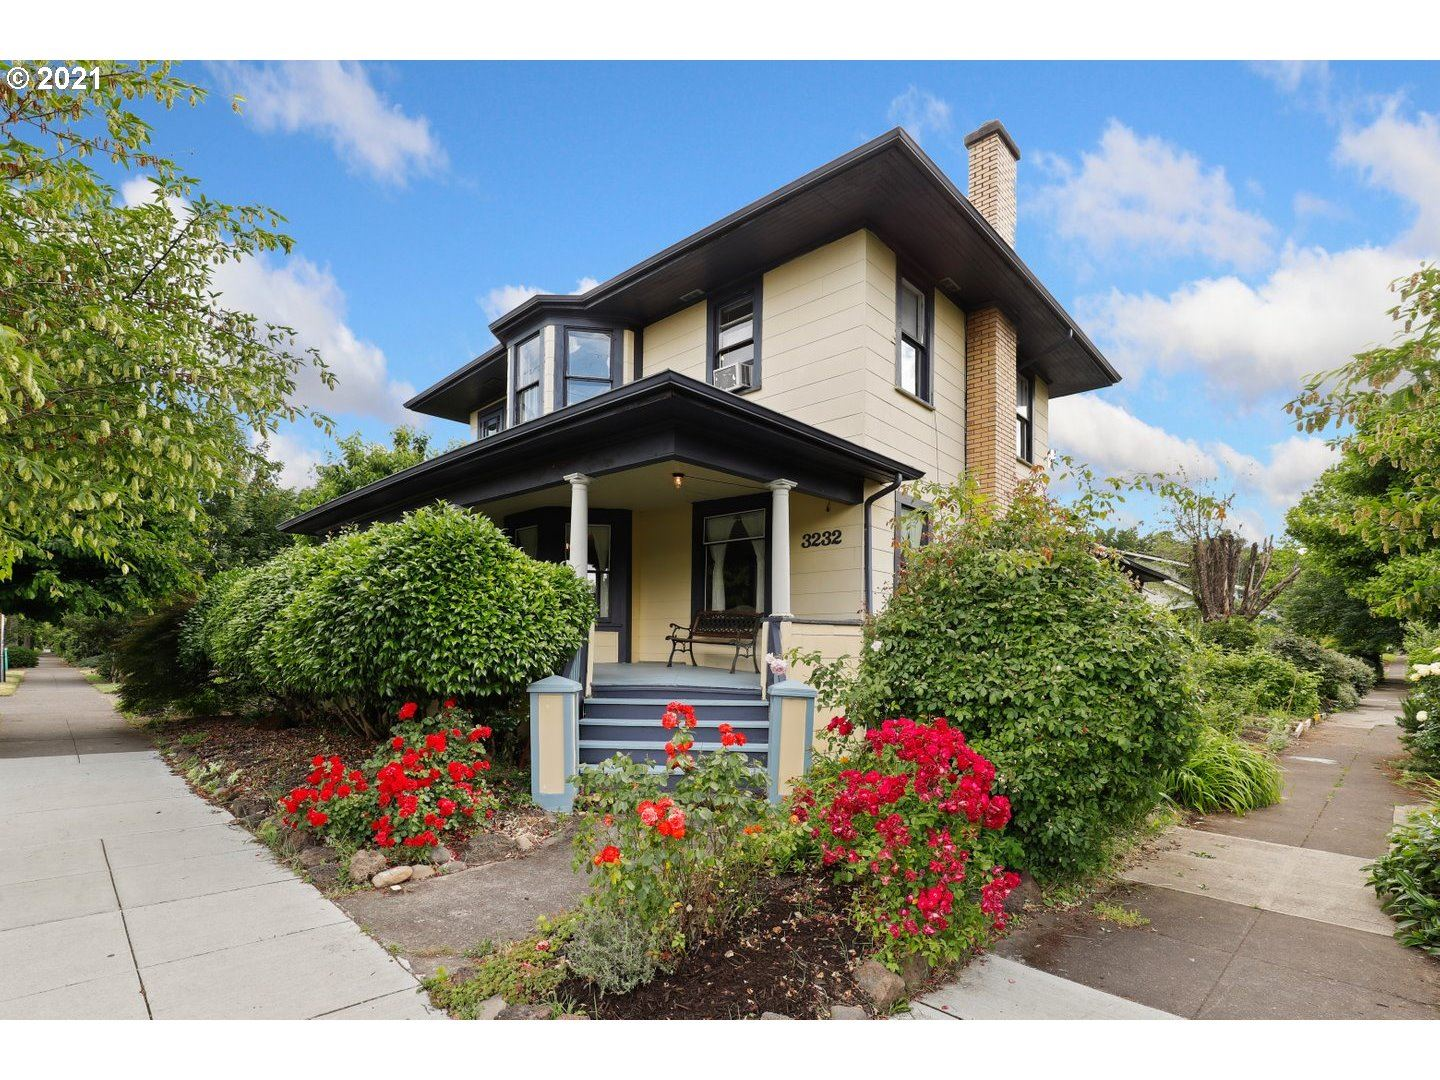 3232 SE 26TH AVE, Portland, OR 97202 - MLS#: 21062863